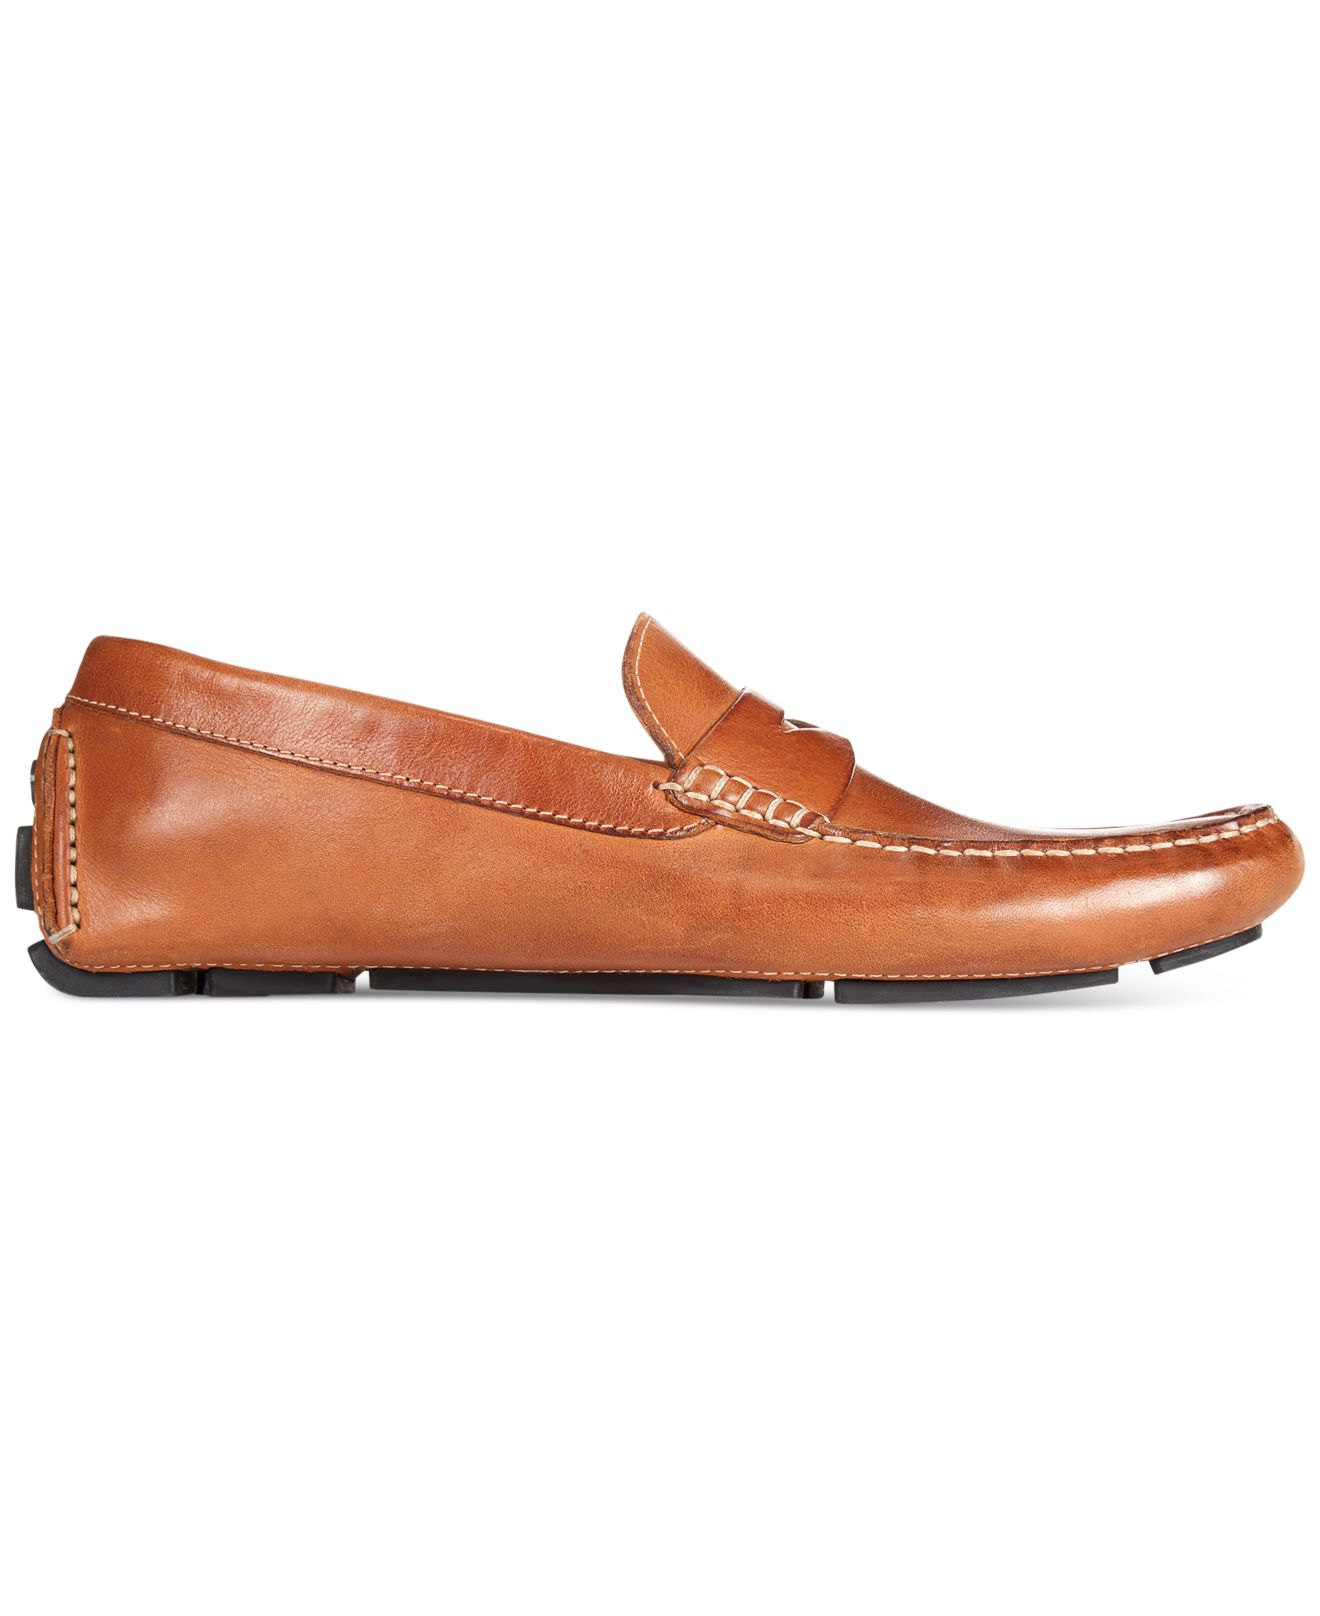 Cole Haan Men's 'Howland' Penny Loafer